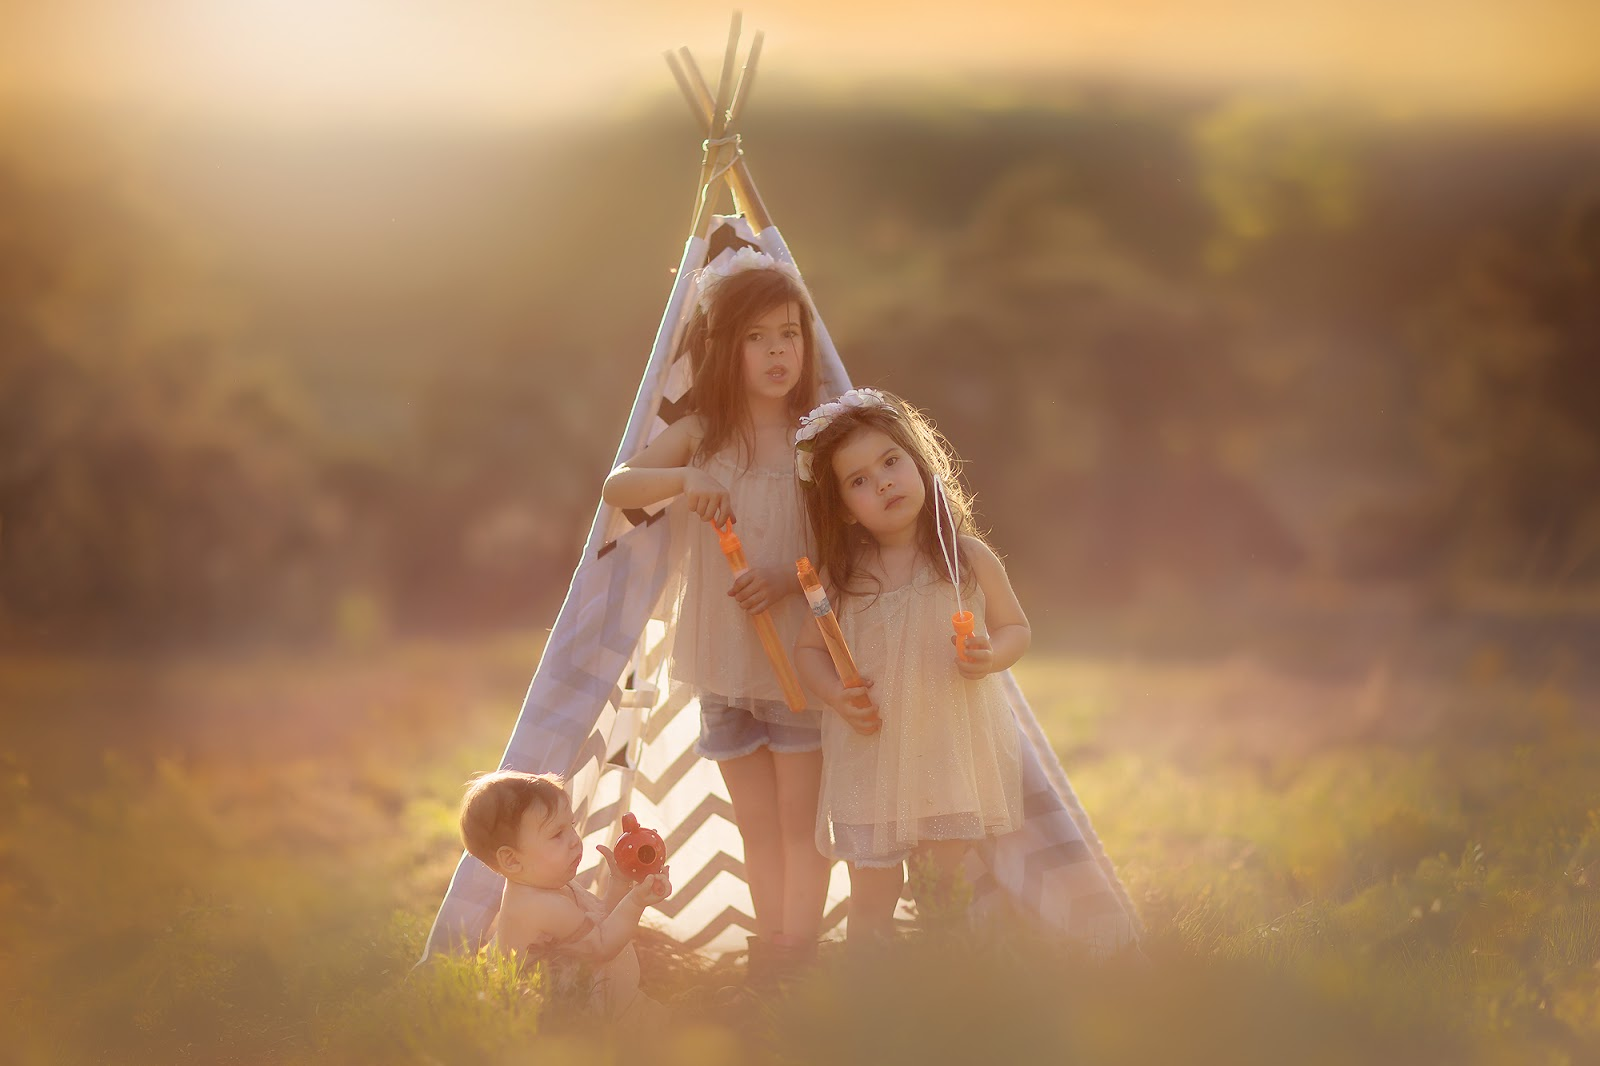 Image of three little sisters sitting in front of a tipi and playing during sunset by Willie Kers